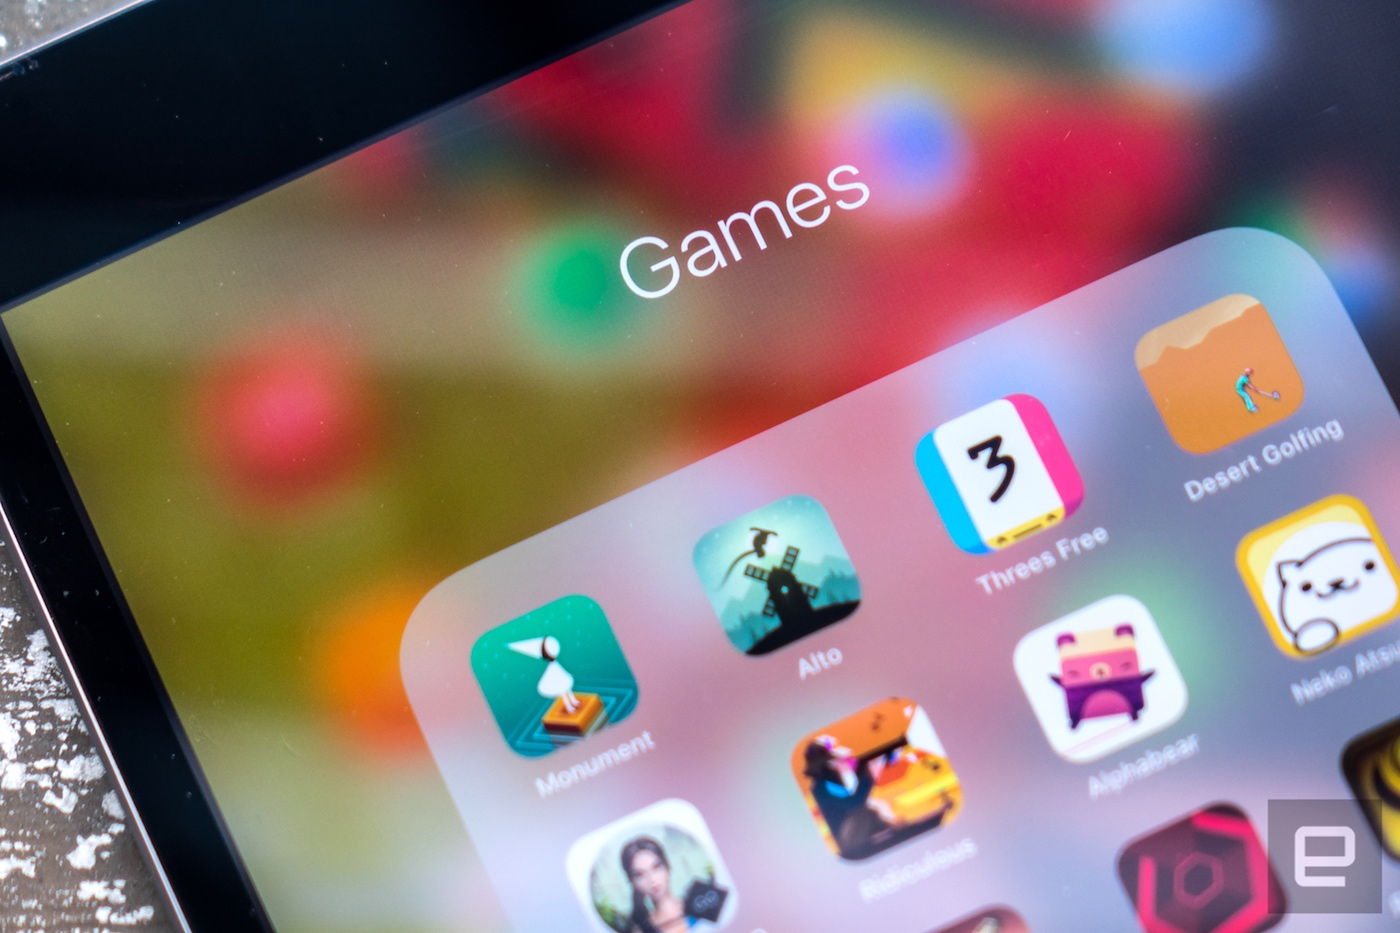 An image of strategy games on a mobile phone